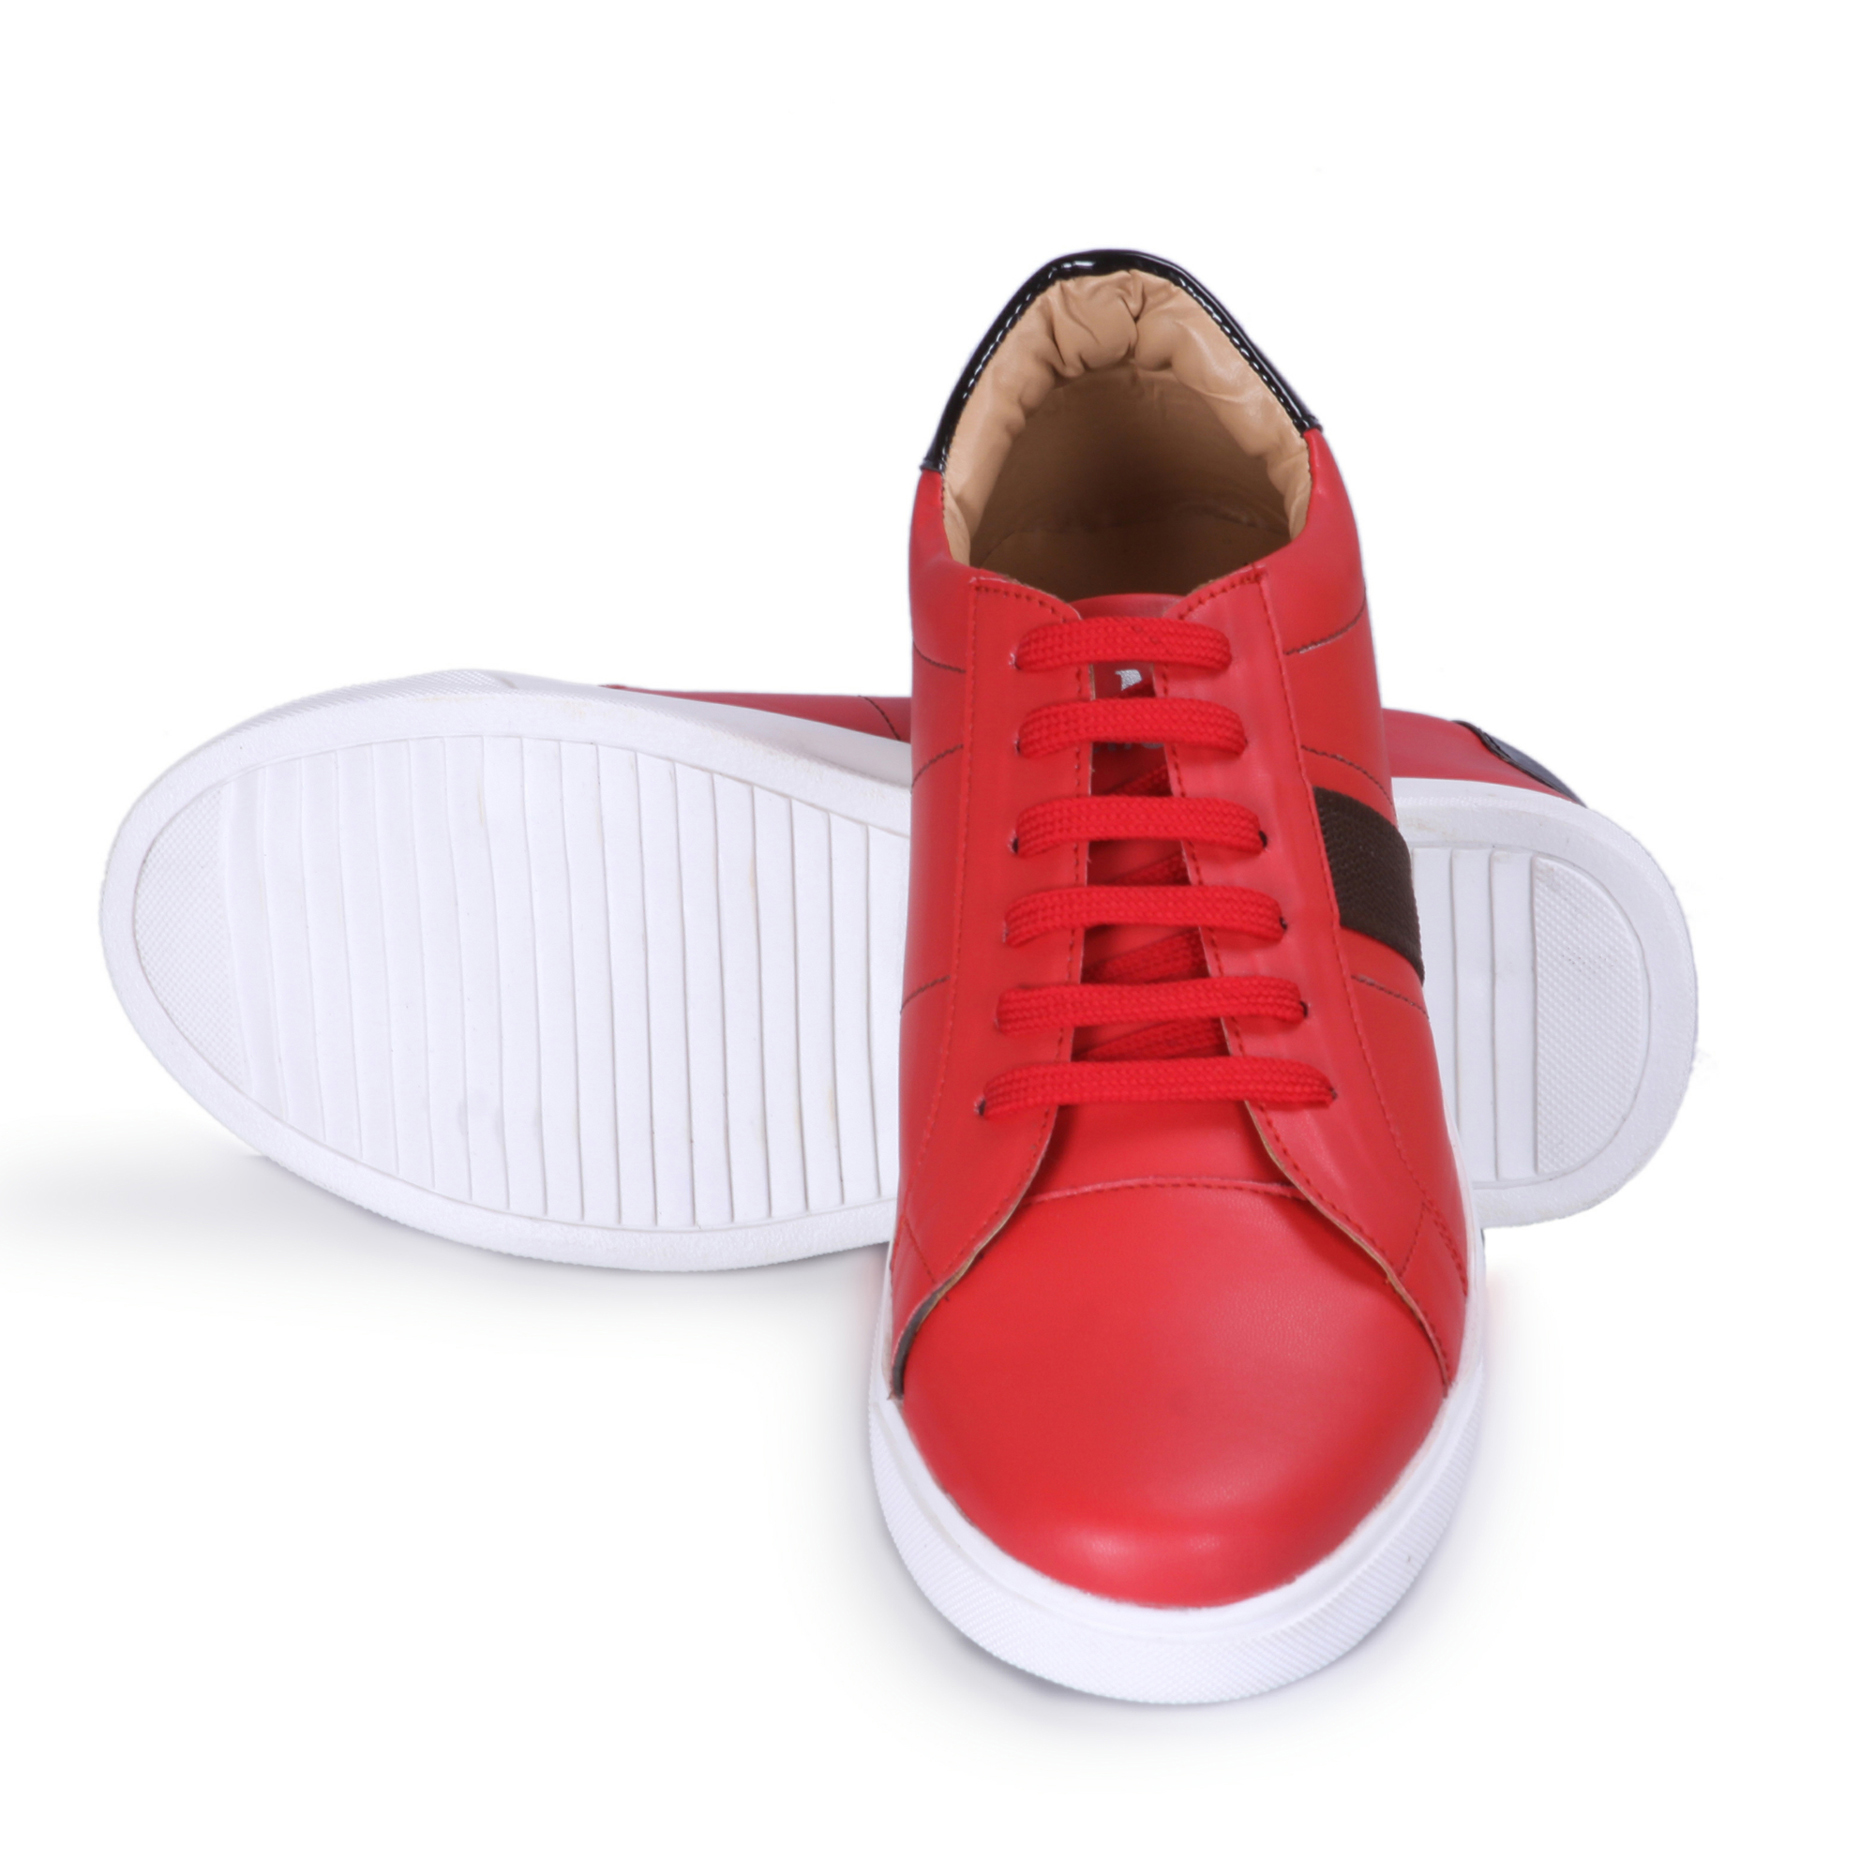 G.M.A Men's Casual Shoes GM_3030_Red (Red, 7-10, 8 PAIR)